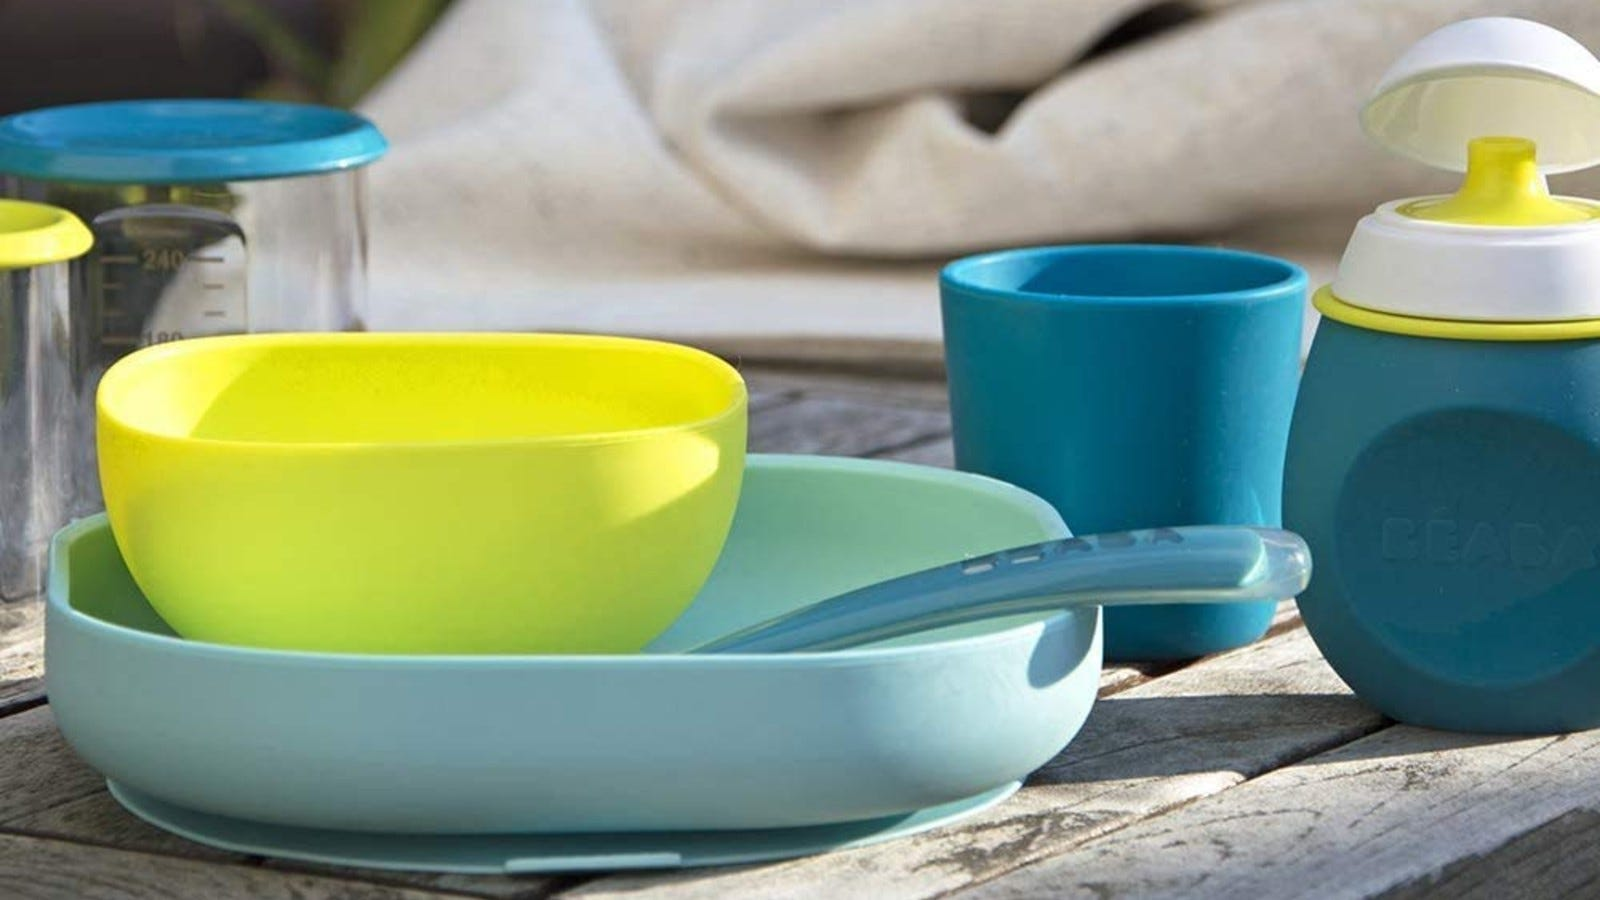 The BEABA Silicone Meal Set in Peacock (green and blue).